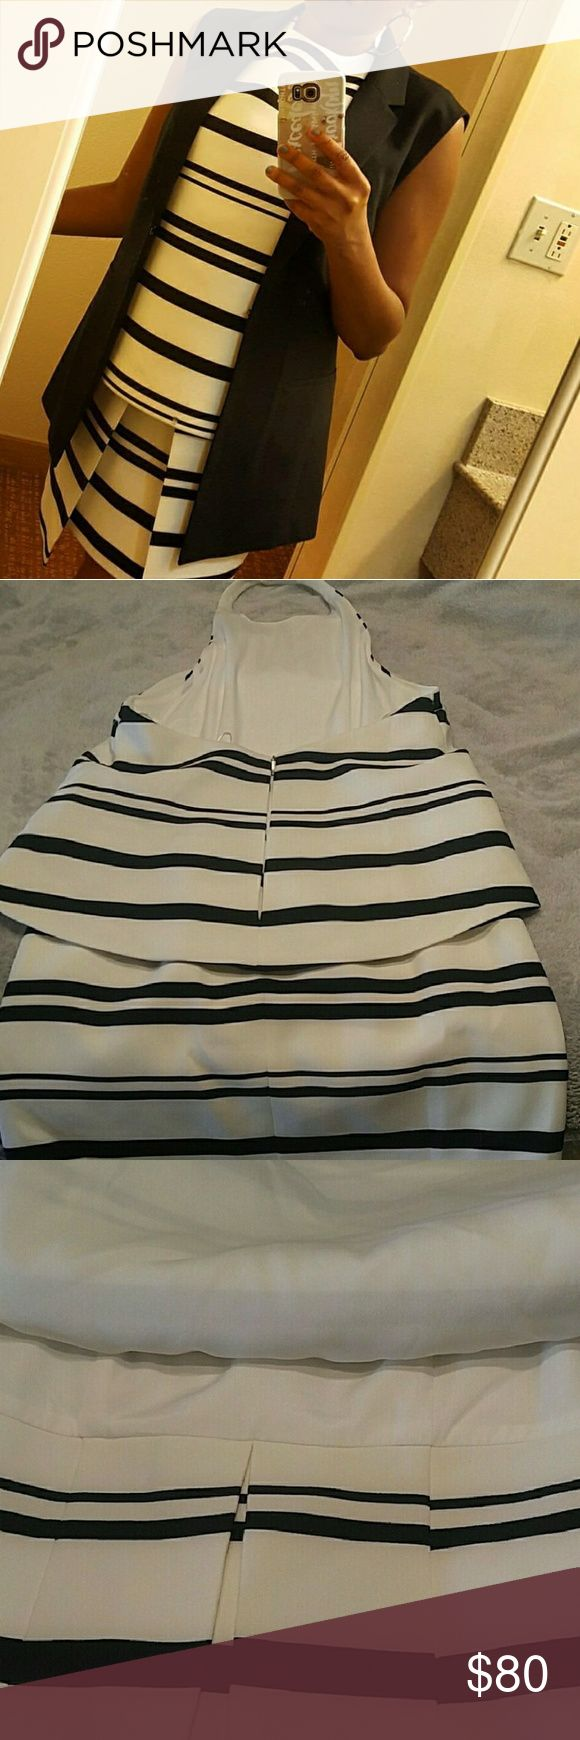 Finders Keepers Halter Twofer dress Black and White Striped  Halter  Size L but fits like a Medium Finders Keepers Dresses Mini